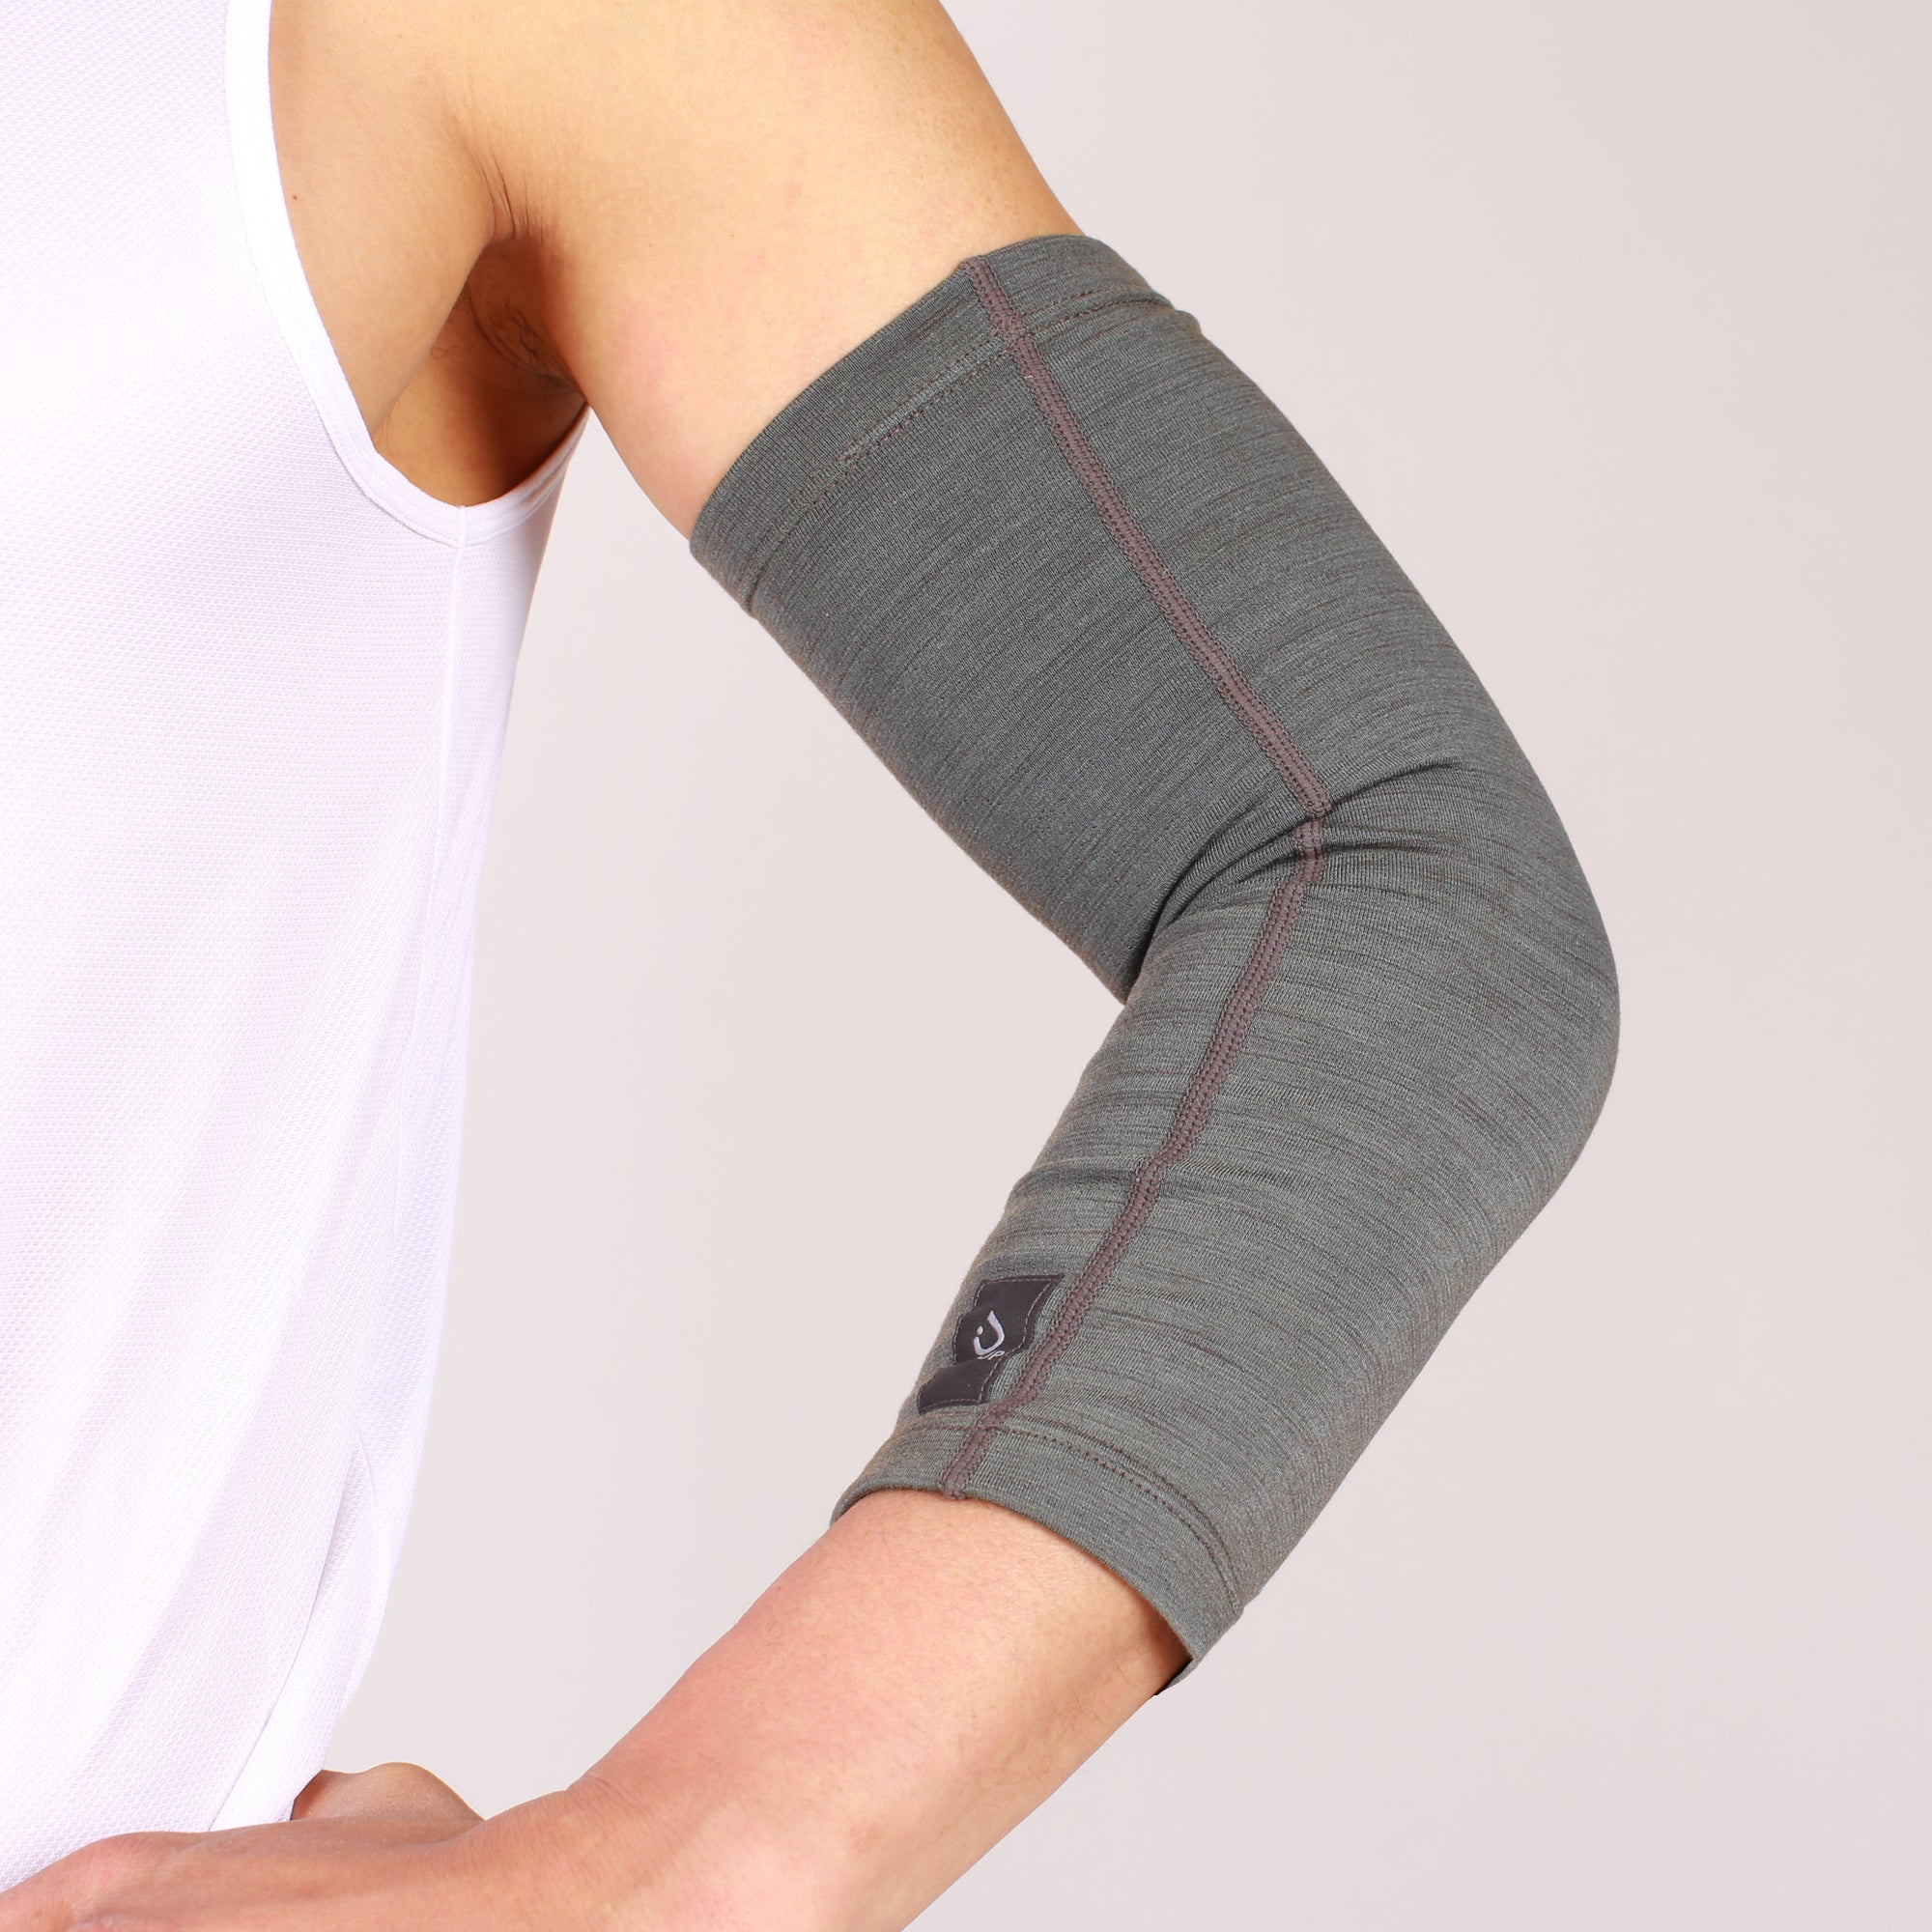 TEMPUP Elbow Protector Arm Band Compression Sleeves Support Arthritis Prevention & Self Recovery Wear for Unisex